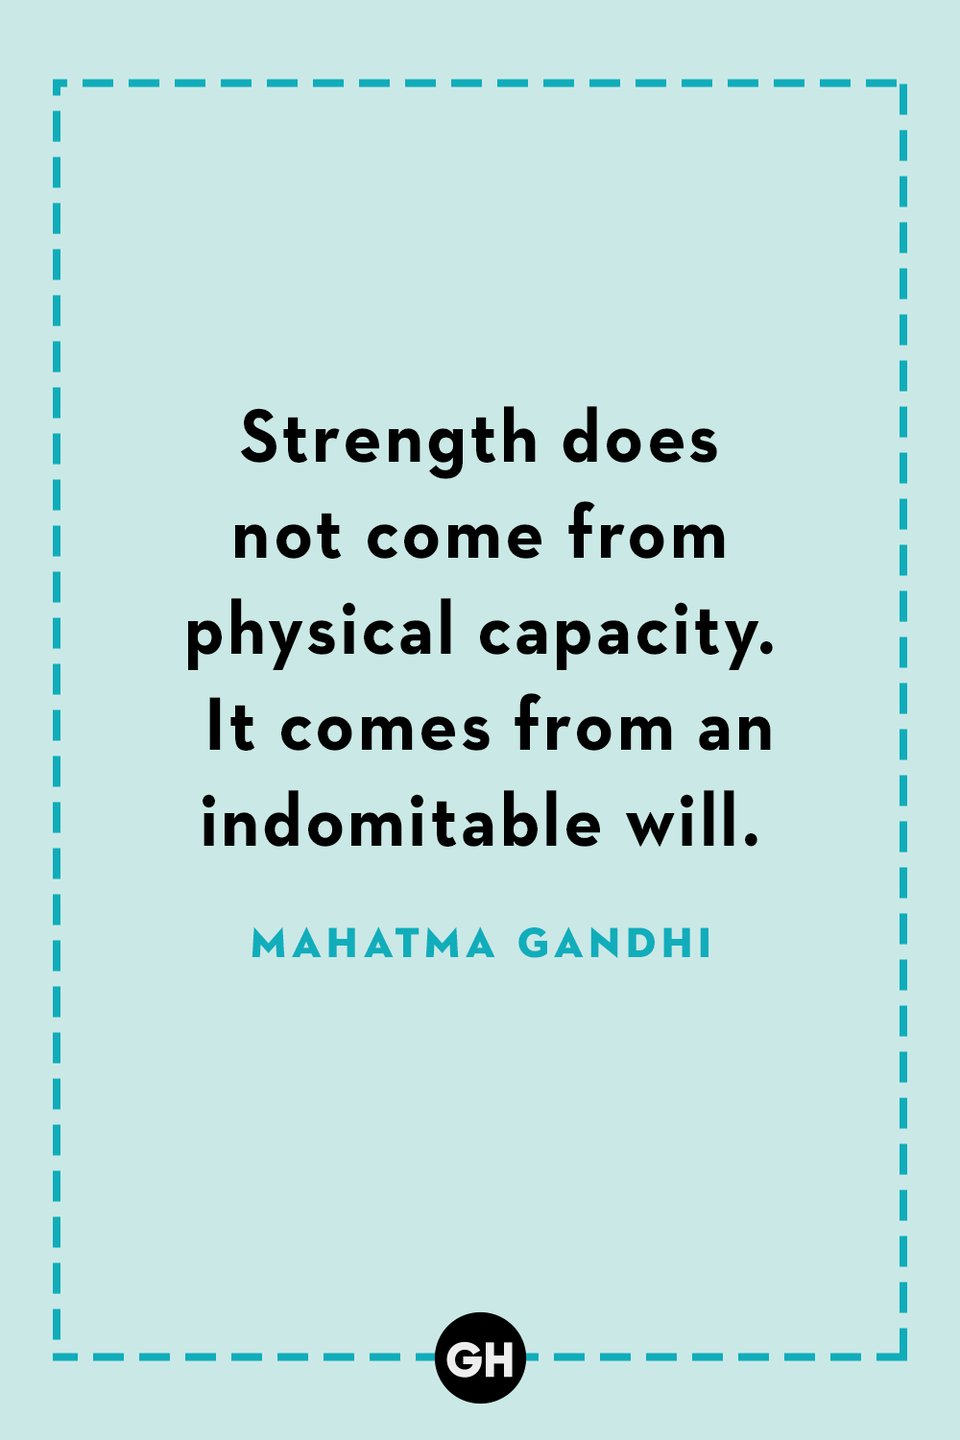 <p>Strength does not come from physical capacity. It comes from an indomitable will.</p>